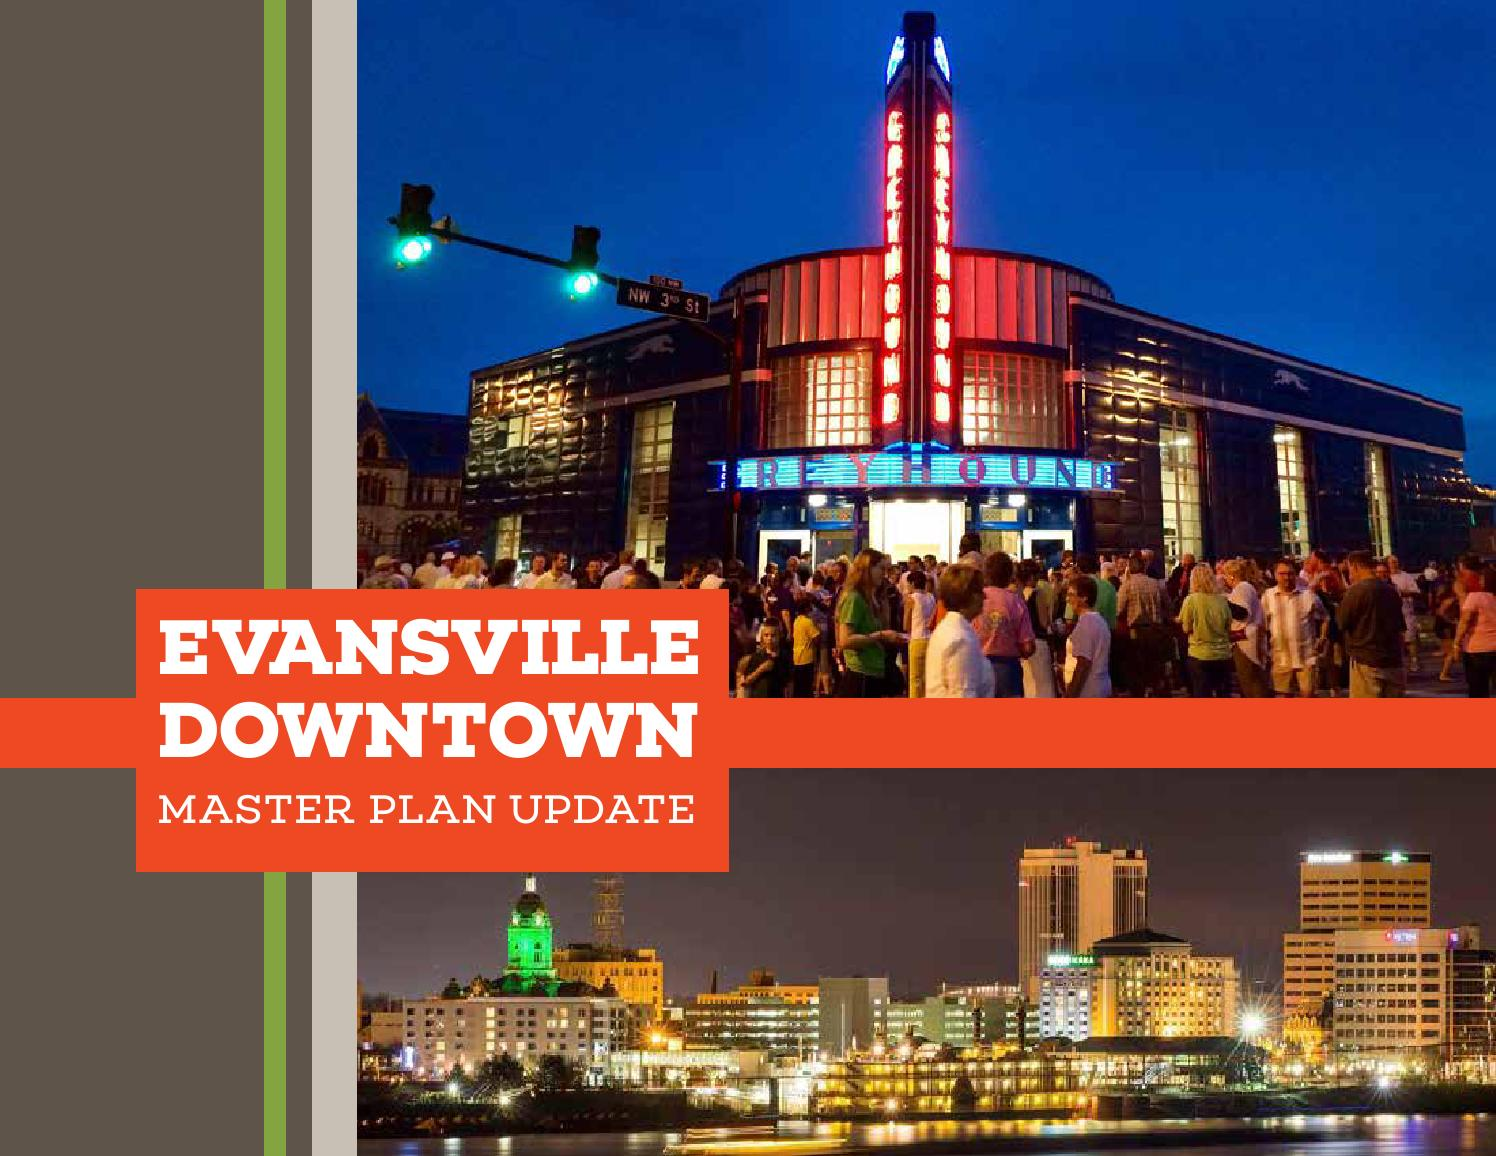 Evansville Downtown Master Plan By